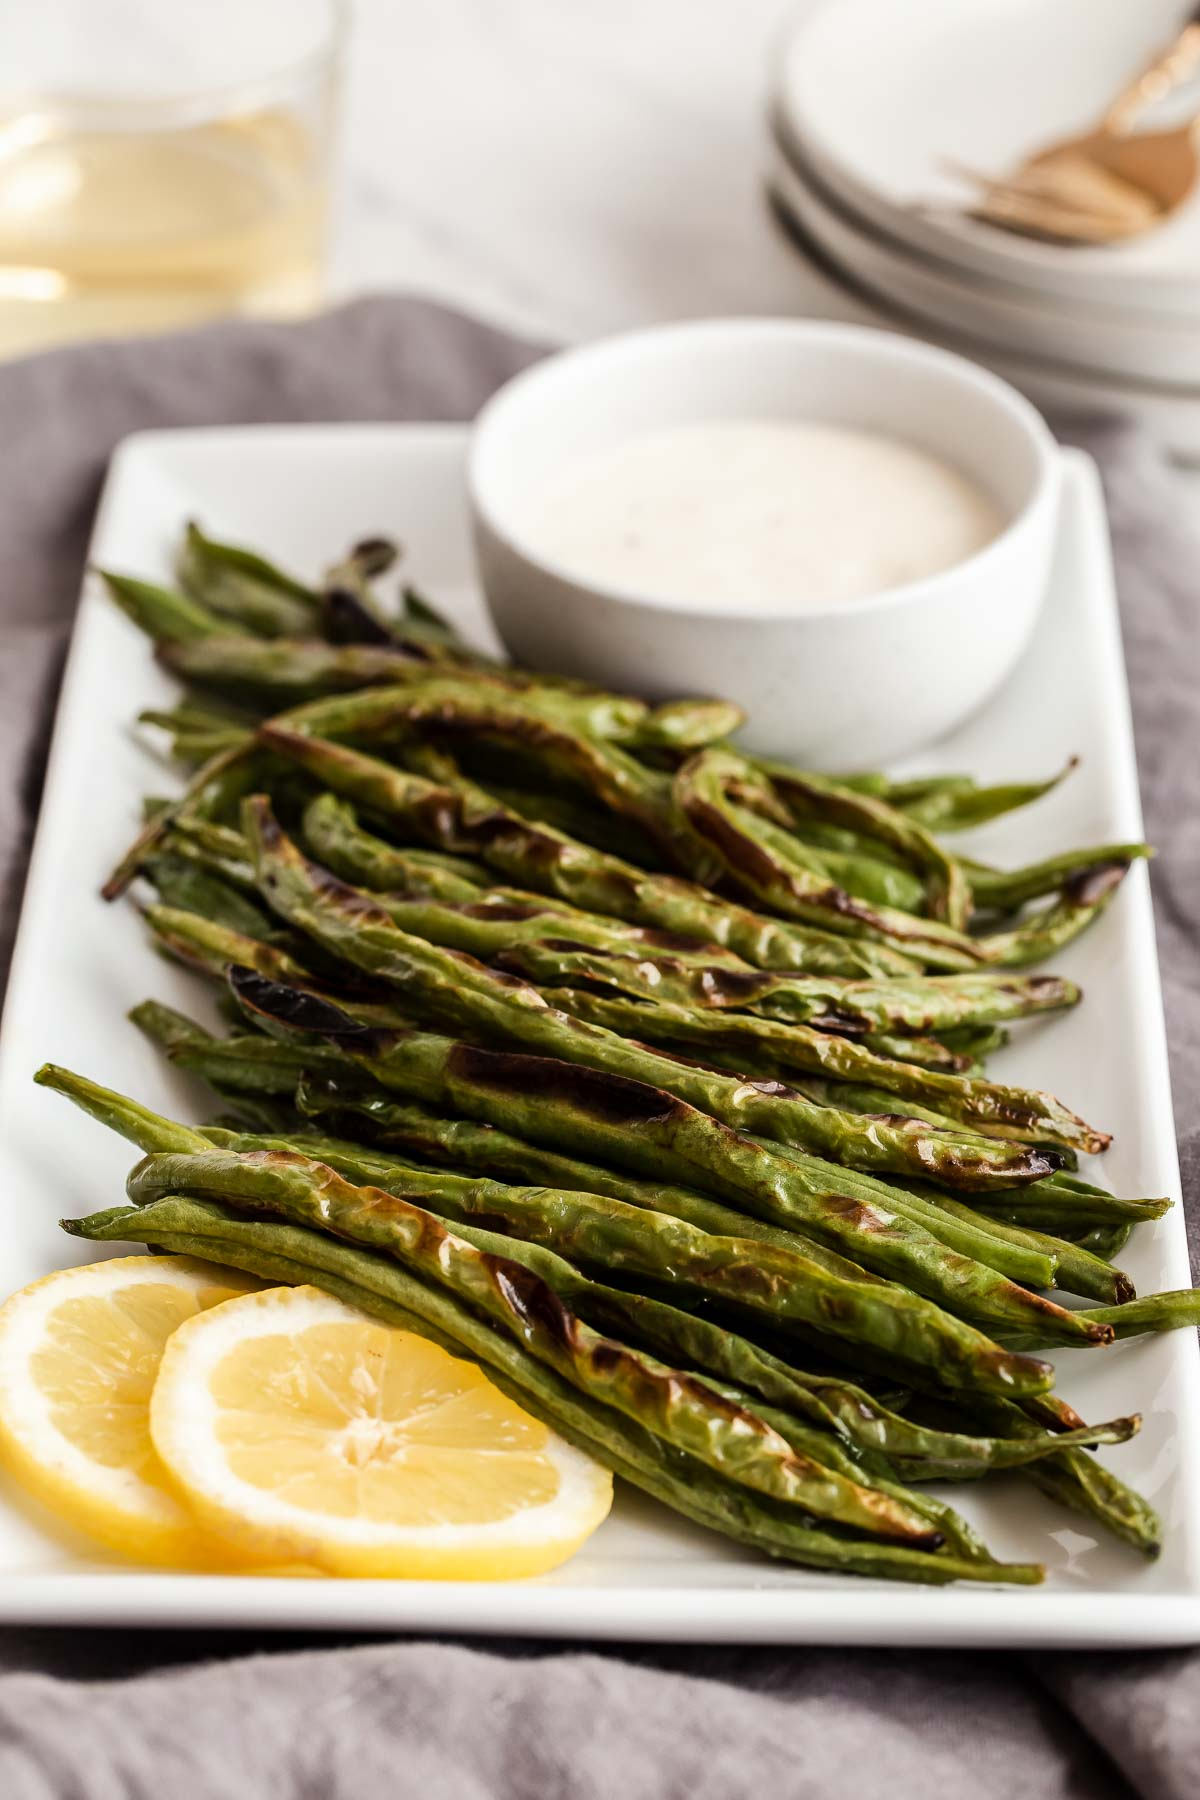 Roasted green beans with ranch on the side.